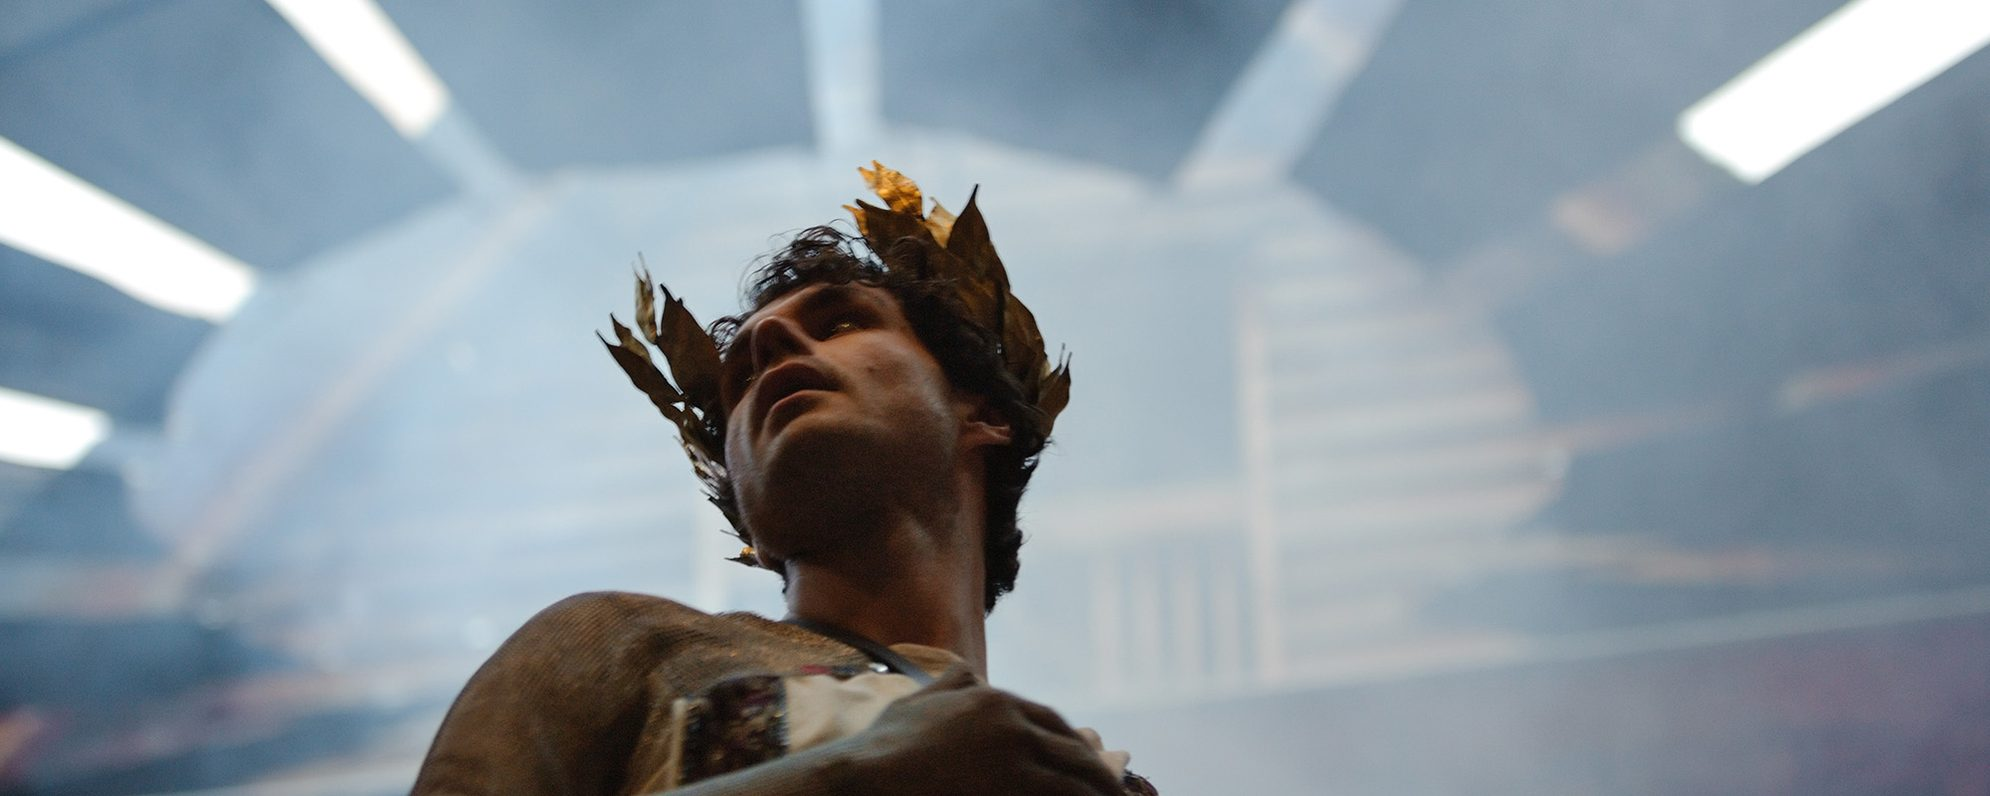 An actor wears a laurel (crown) made of gold leaves and looks up to the left, with a blue haze behind him